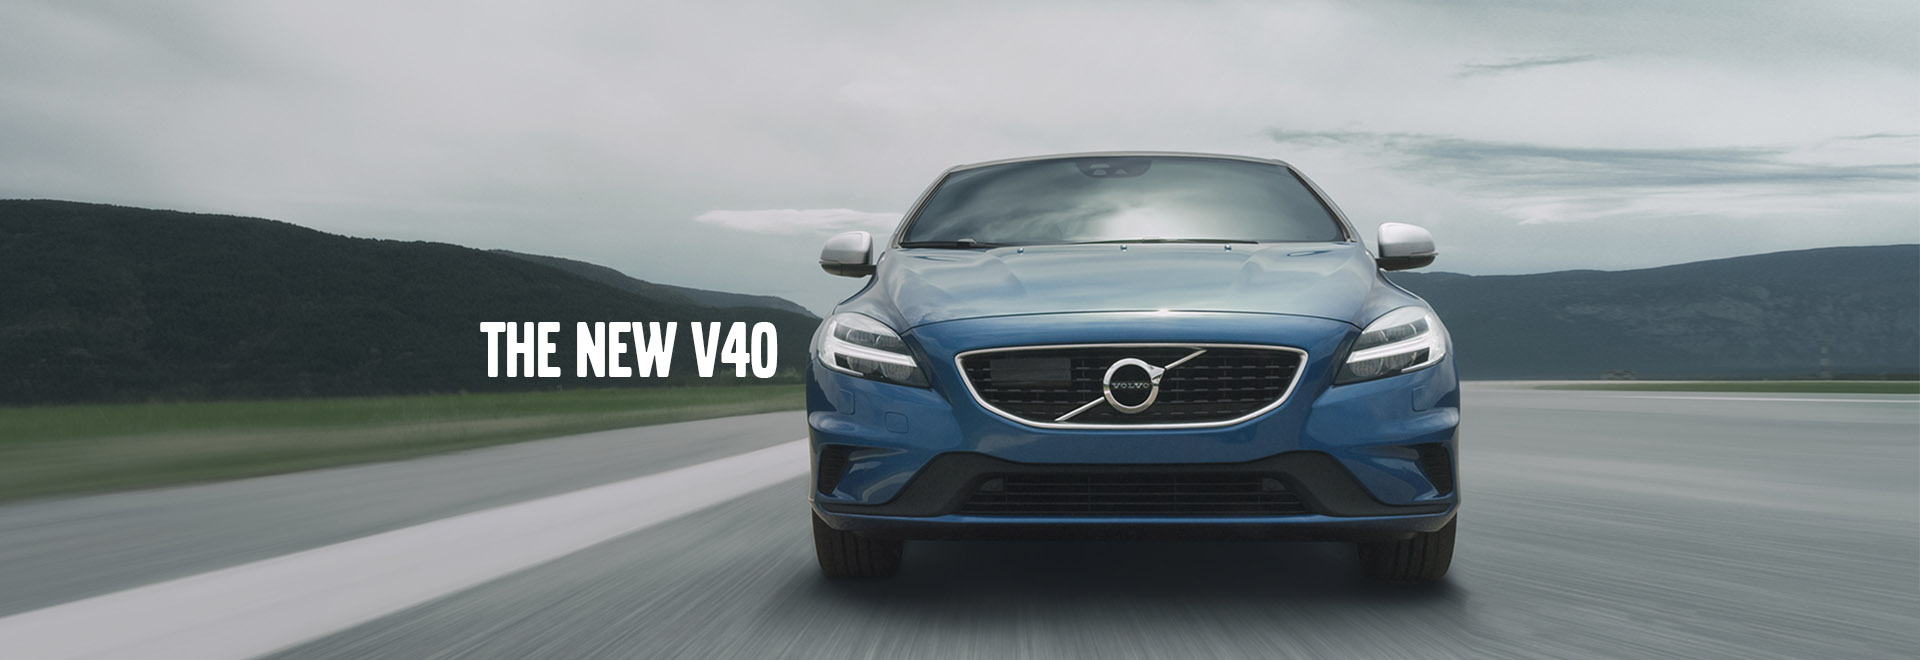 Volvo V40 For Sale In Bentleigh - Volvo Cars Brighton